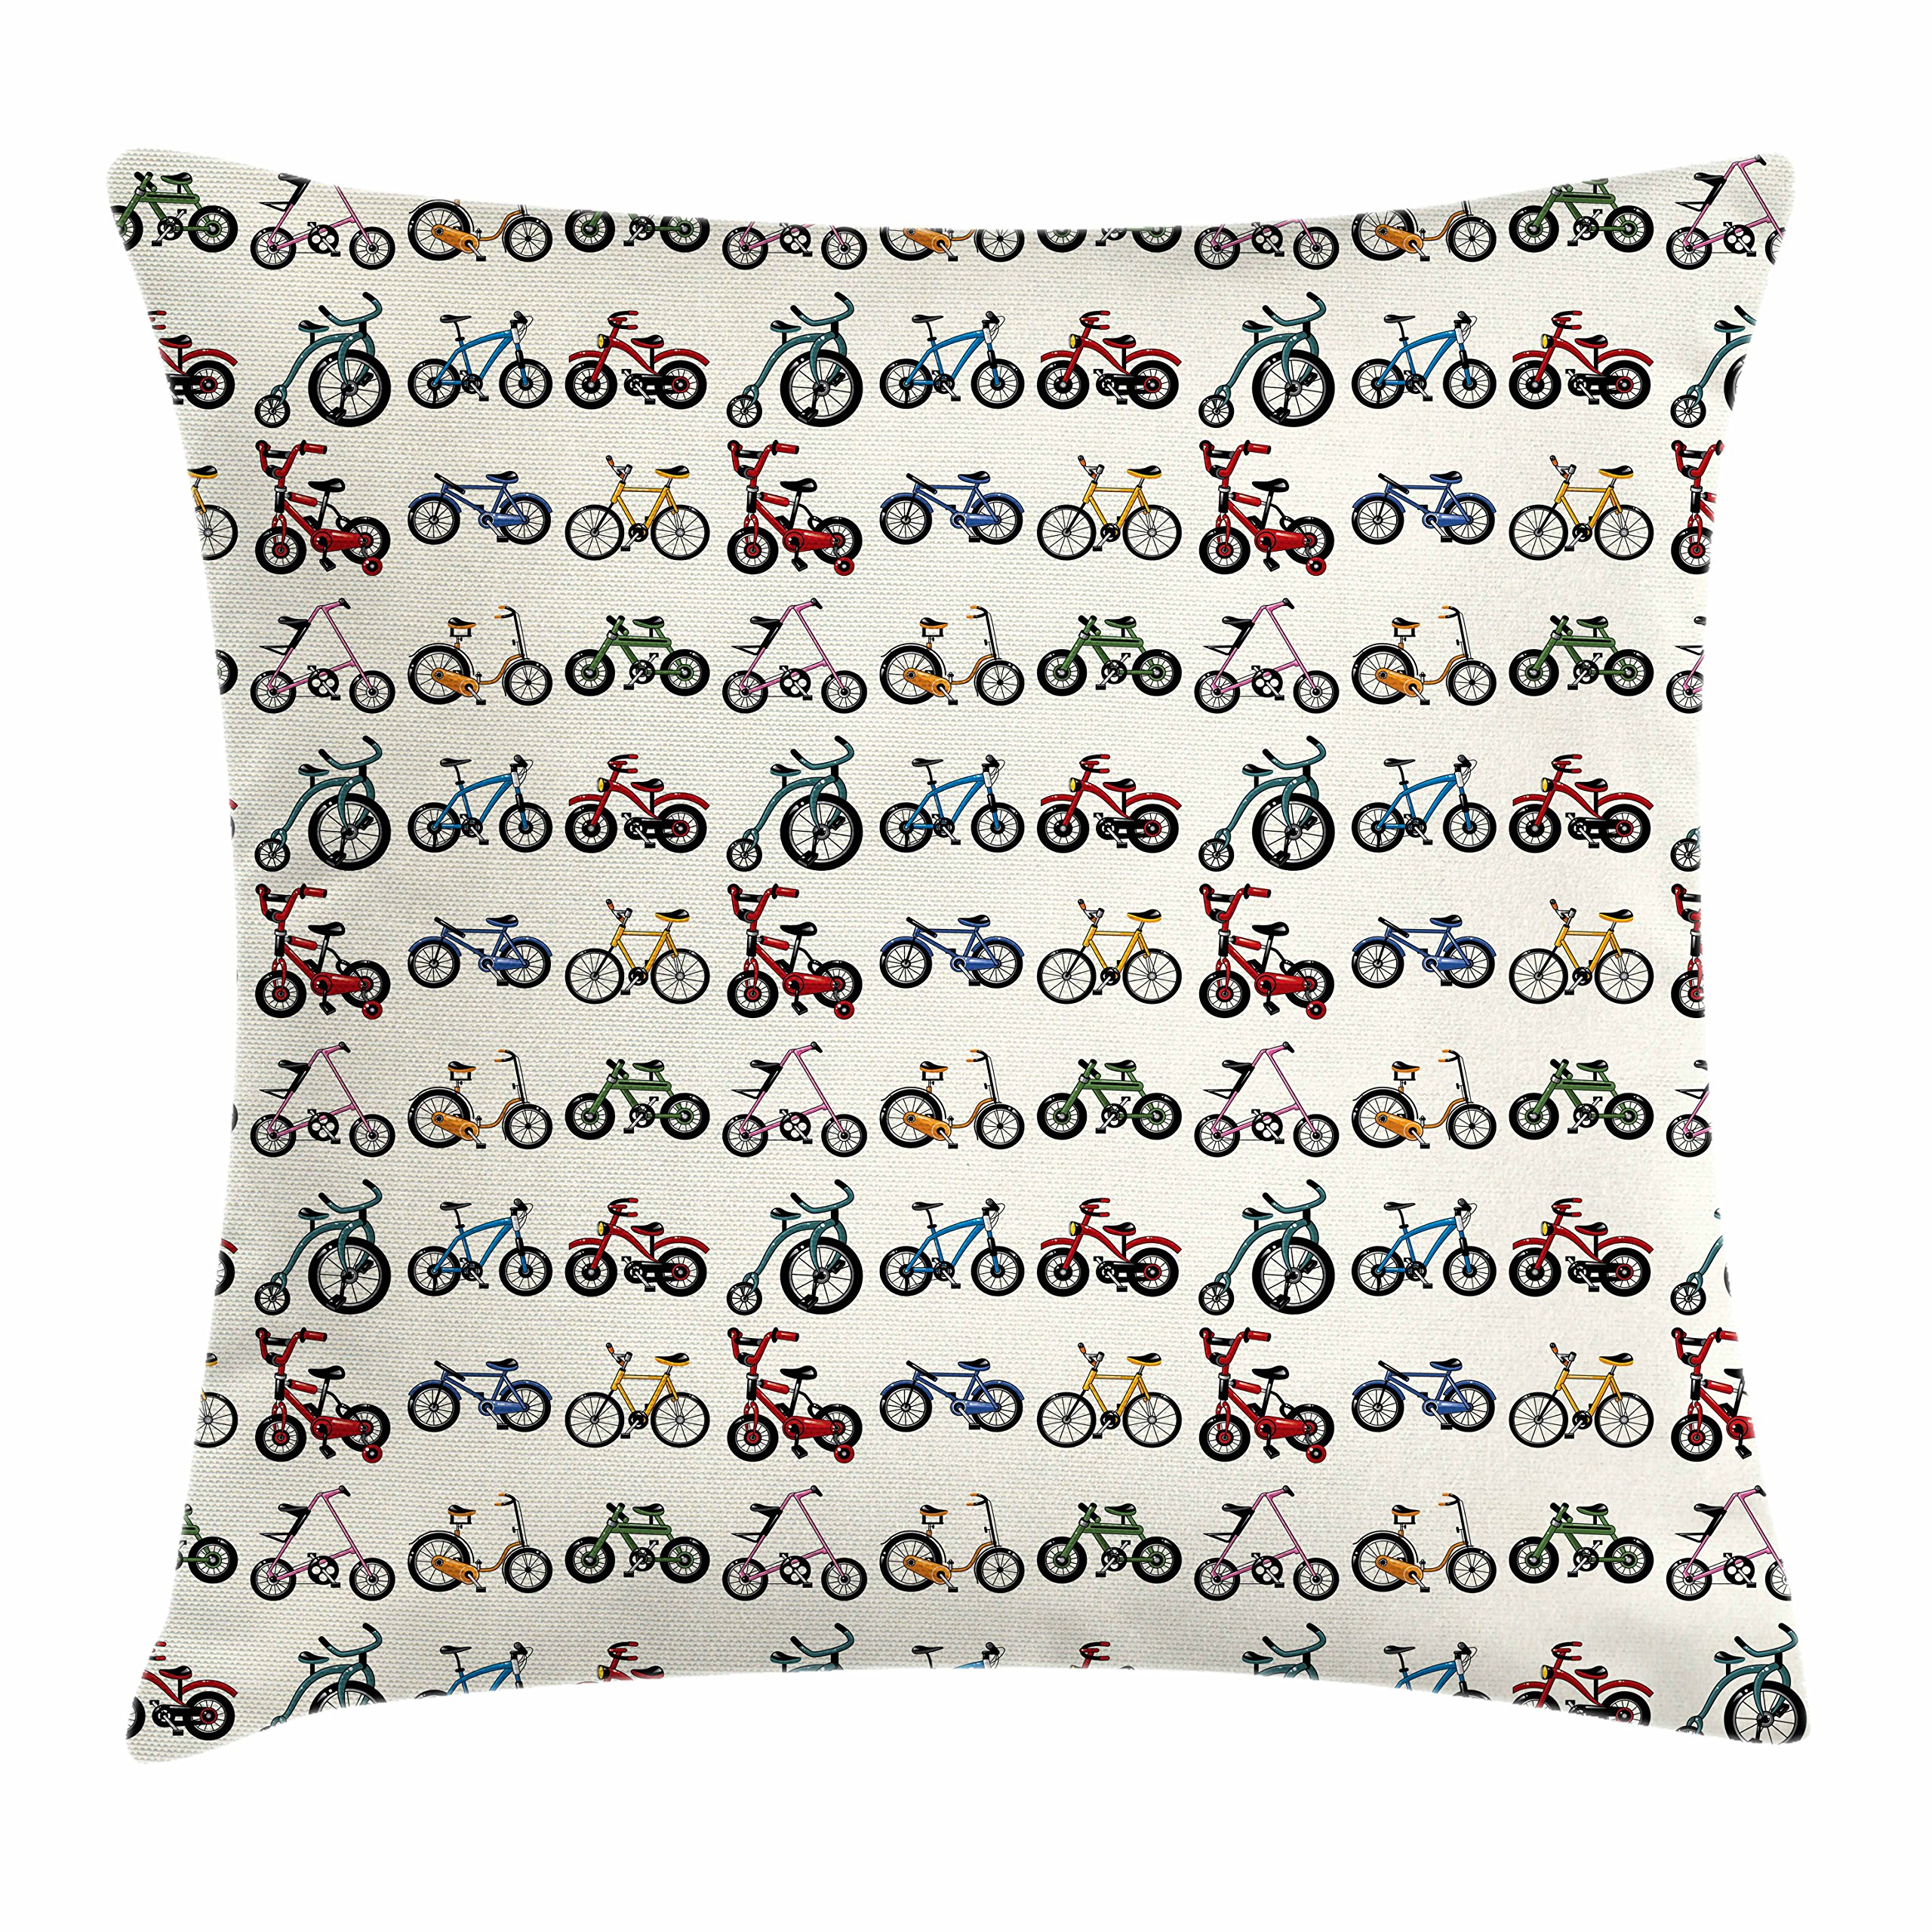 Ambesonne Kids Throw Pillow Cushion Cover, Colorful Collection of Bicycles with Boys Girls Riding Sports Activity Themed Pattern, Decorative Square Accent Pillow Case, 20 X 20 inches, Multicolor